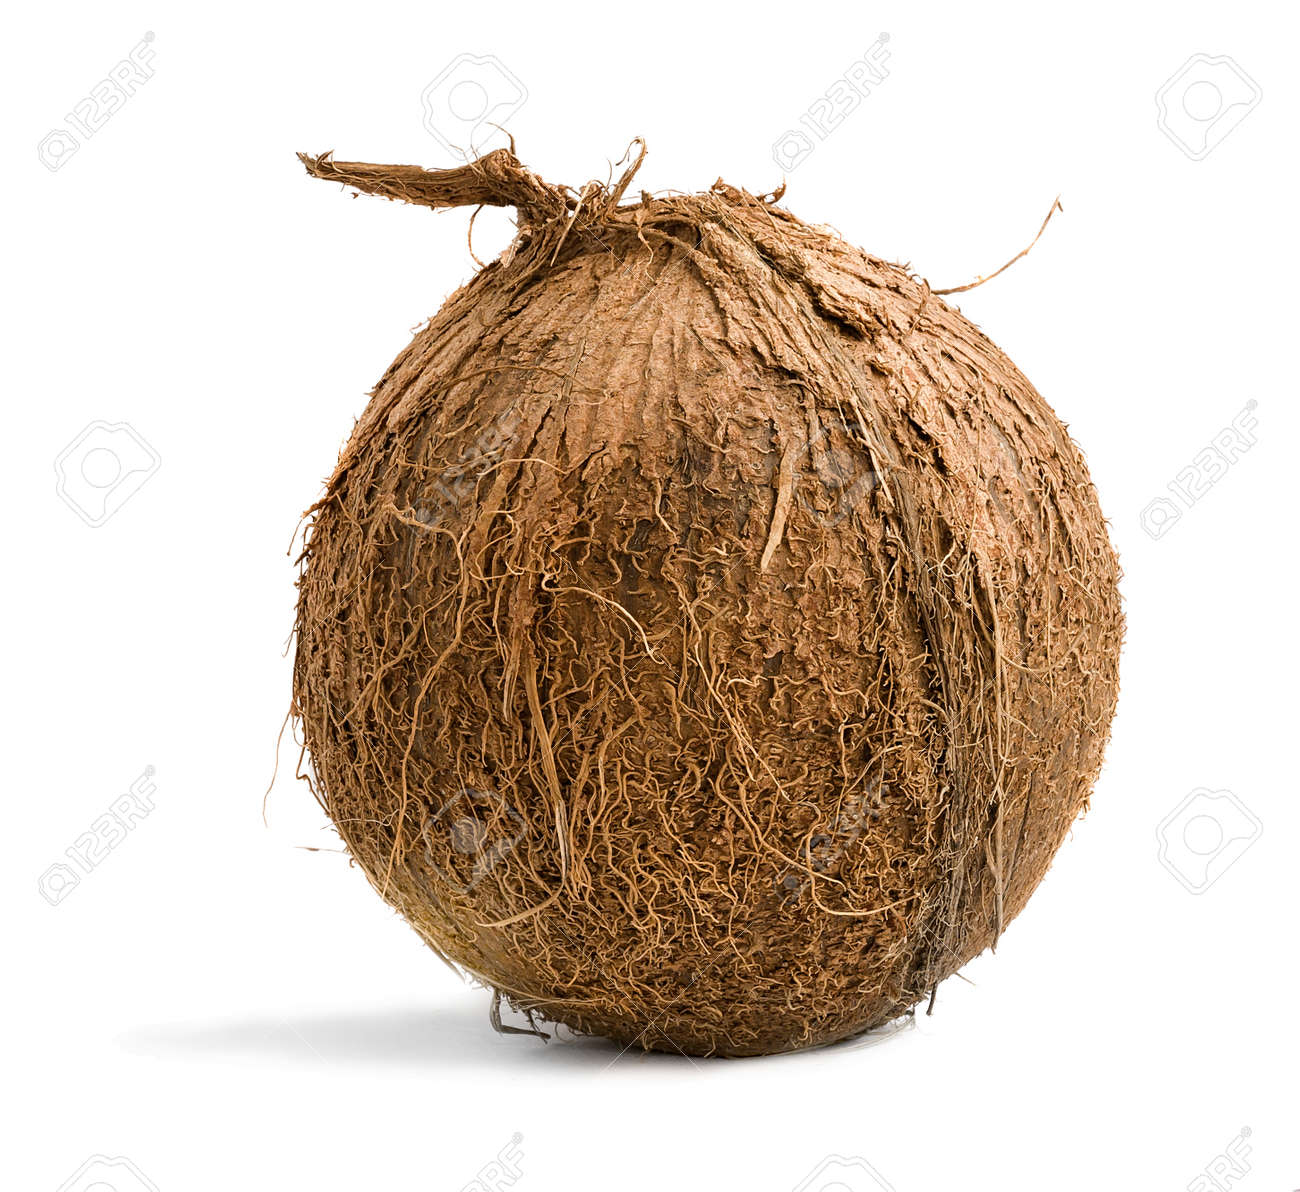 Tropical fruit a whole coconut isolated on a white background - 170947484